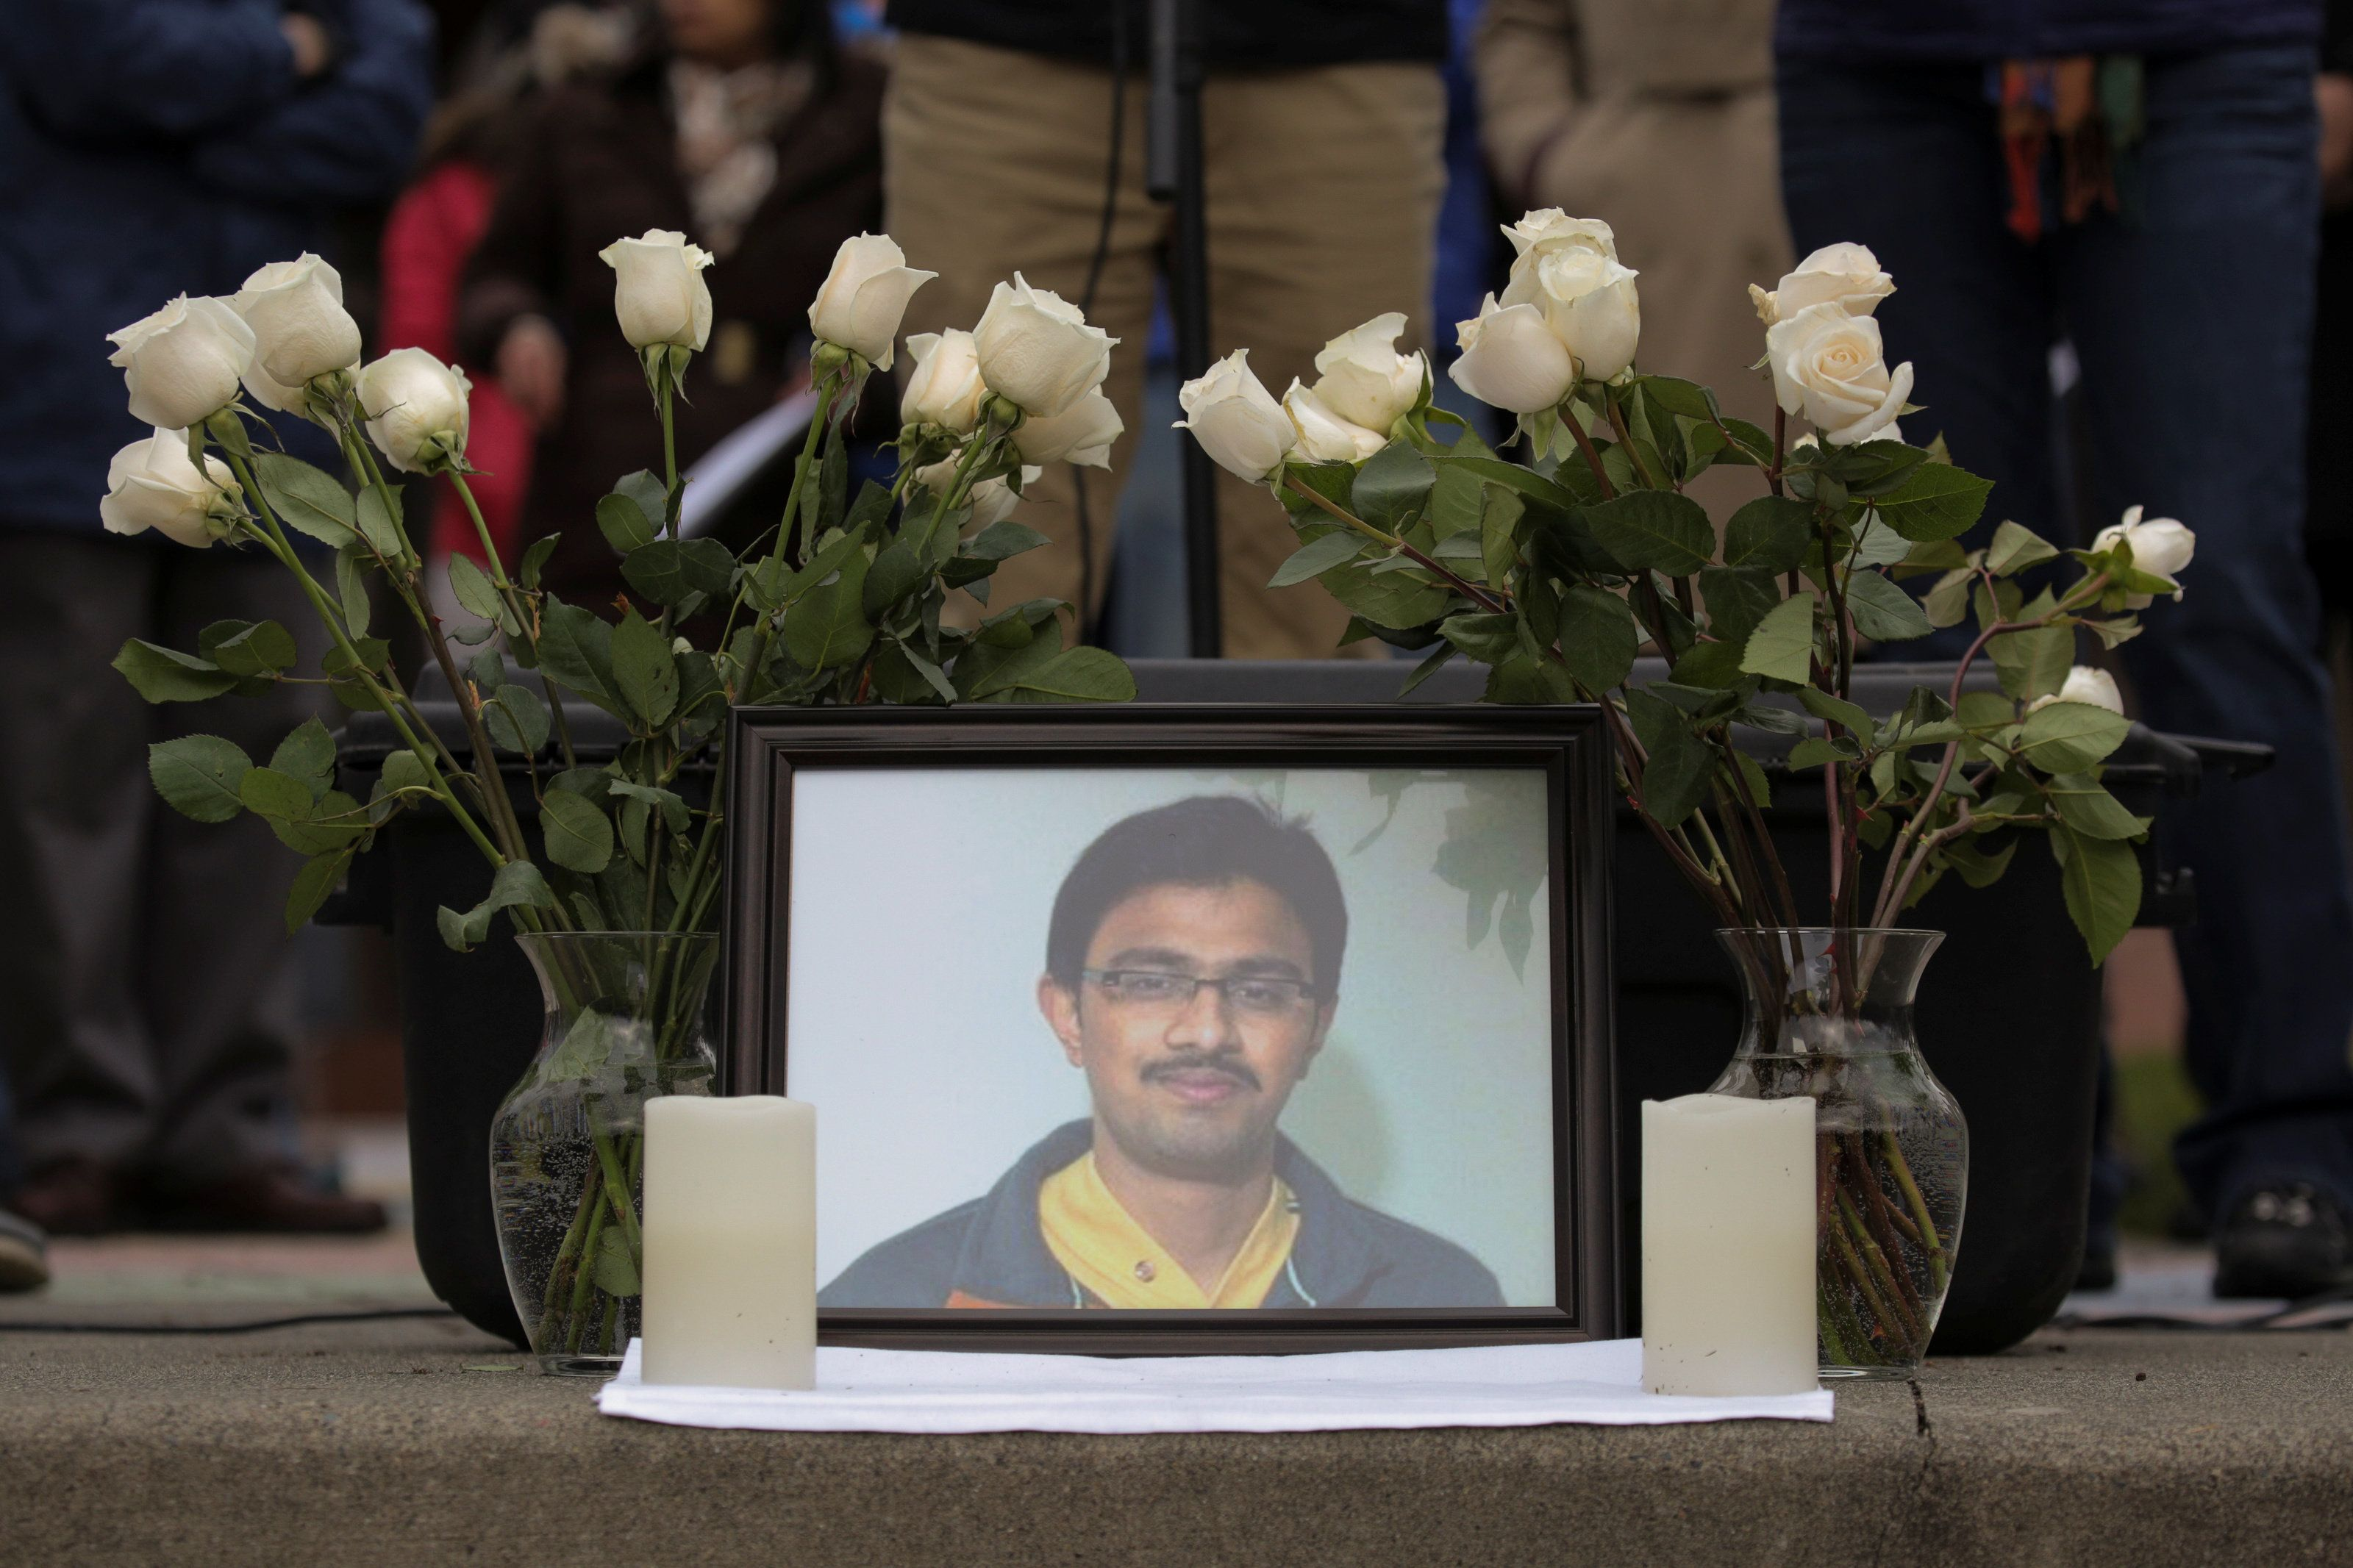 A picture of Srinivas Kuchibhotla, an immigrant from India who was recently shot and killed in Kansas, is surrounded by roses